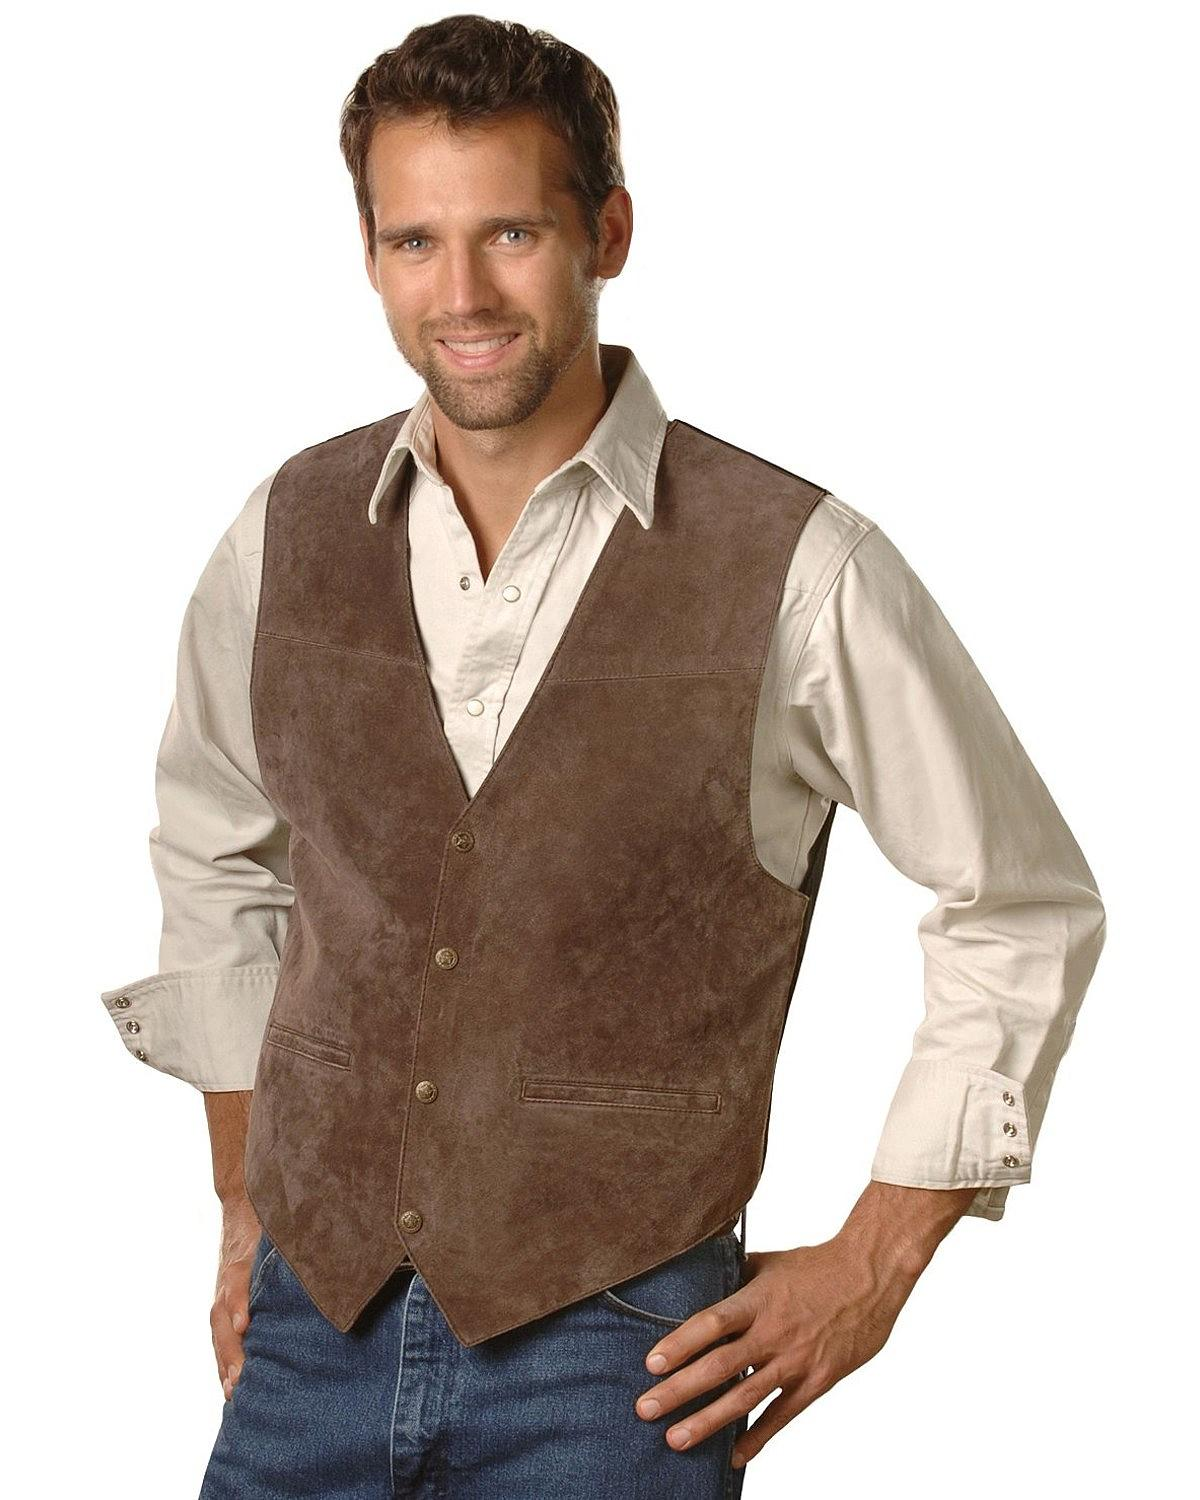 Men's Tuxedo Vests made by our house brand, Moda Formalwear, are the most prevalent vests in the formal wear industry. Since we make most of what we sell we can pass on the savings to you. We offer the largest selection of tuxedo vests.